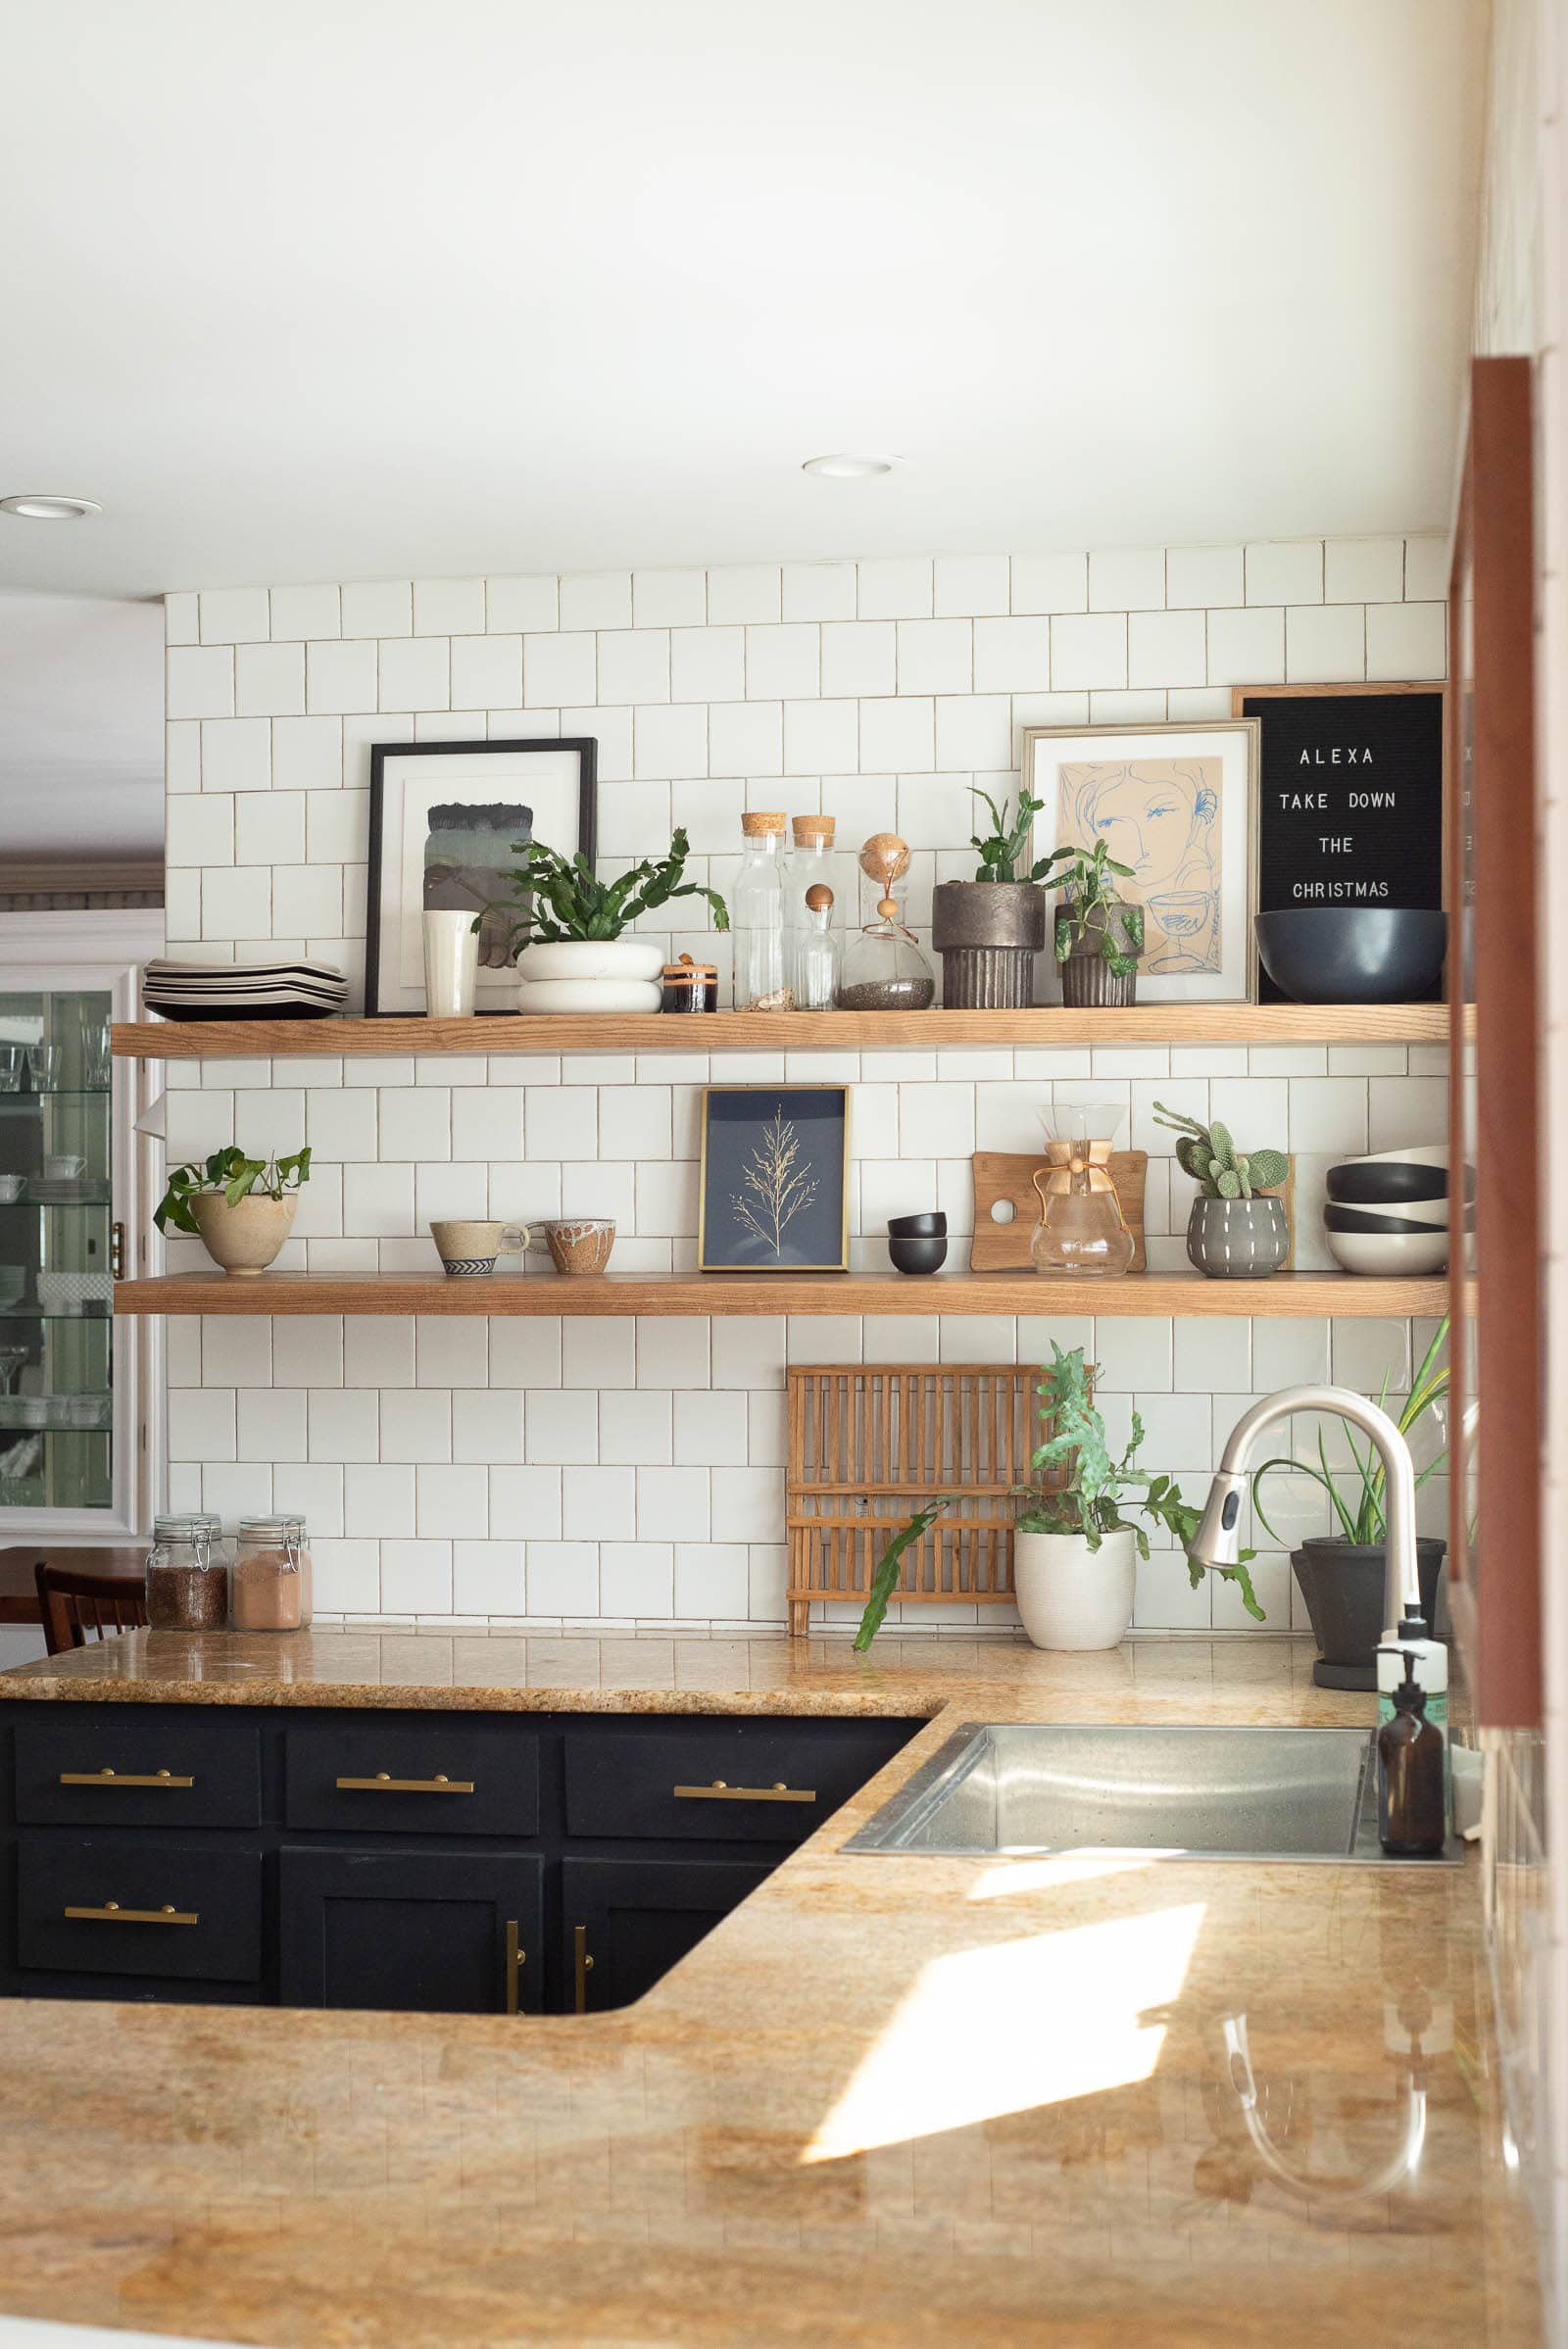 Kitchen shelves decorated with art